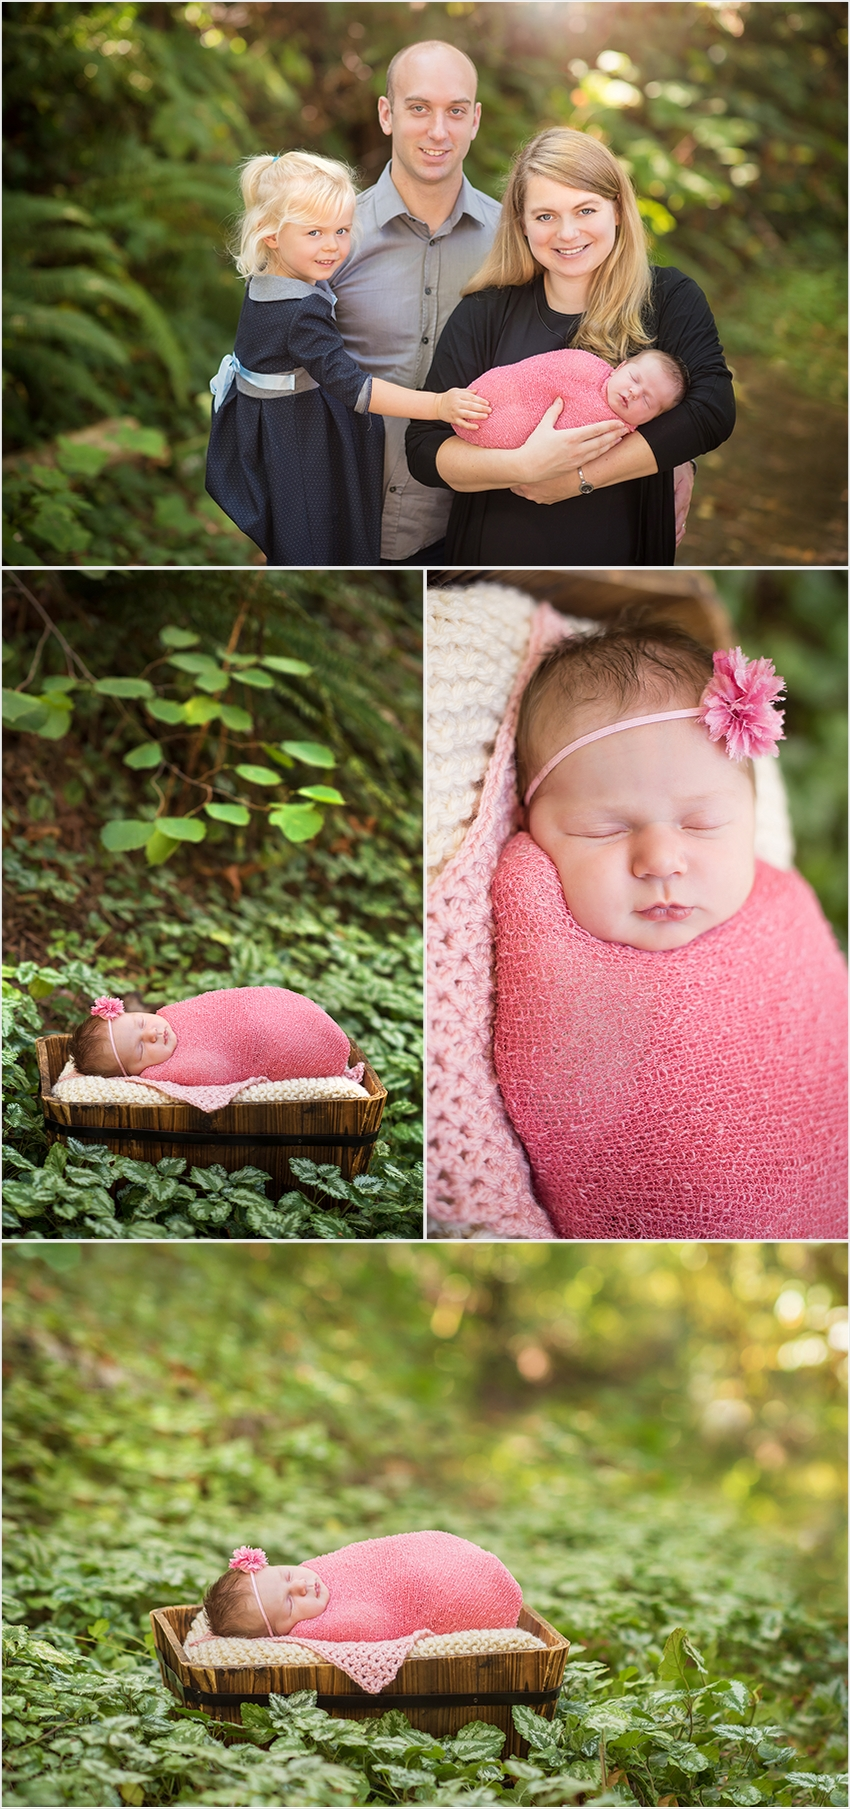 outdoor-newborn-photography-abbotsford-bc-001-side-1